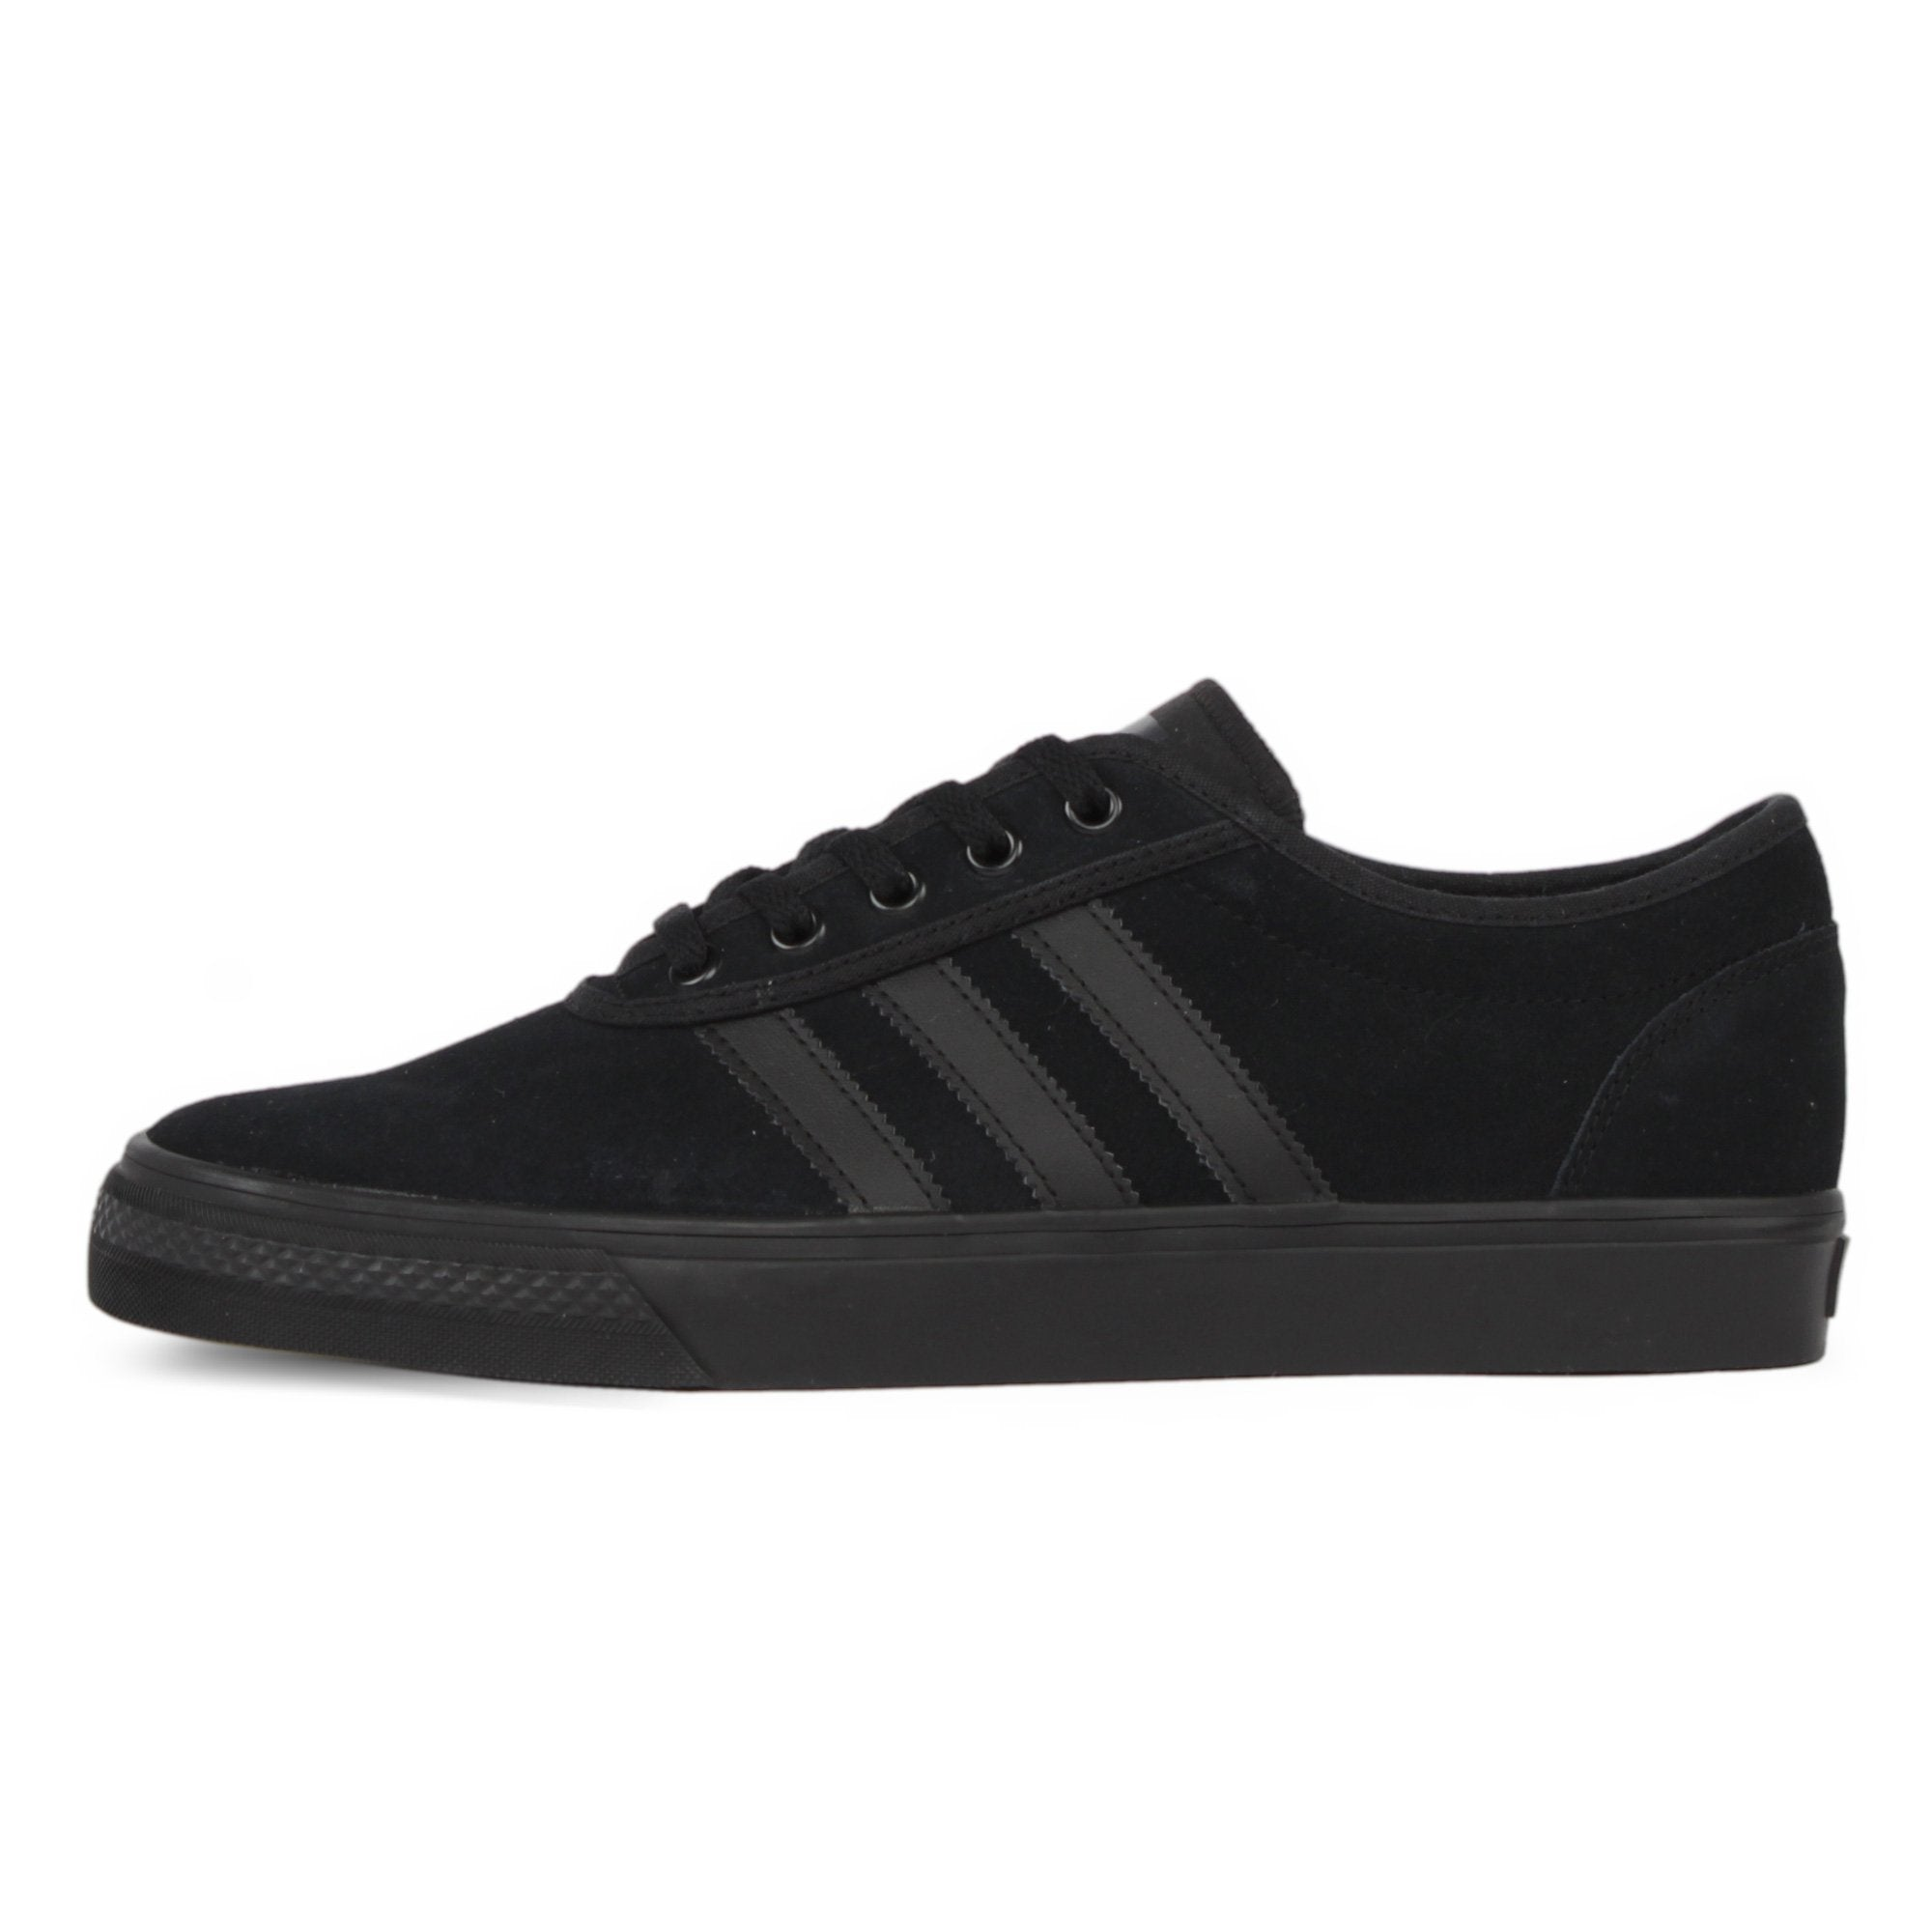 Adidas Adi-Ease Product Photo #1